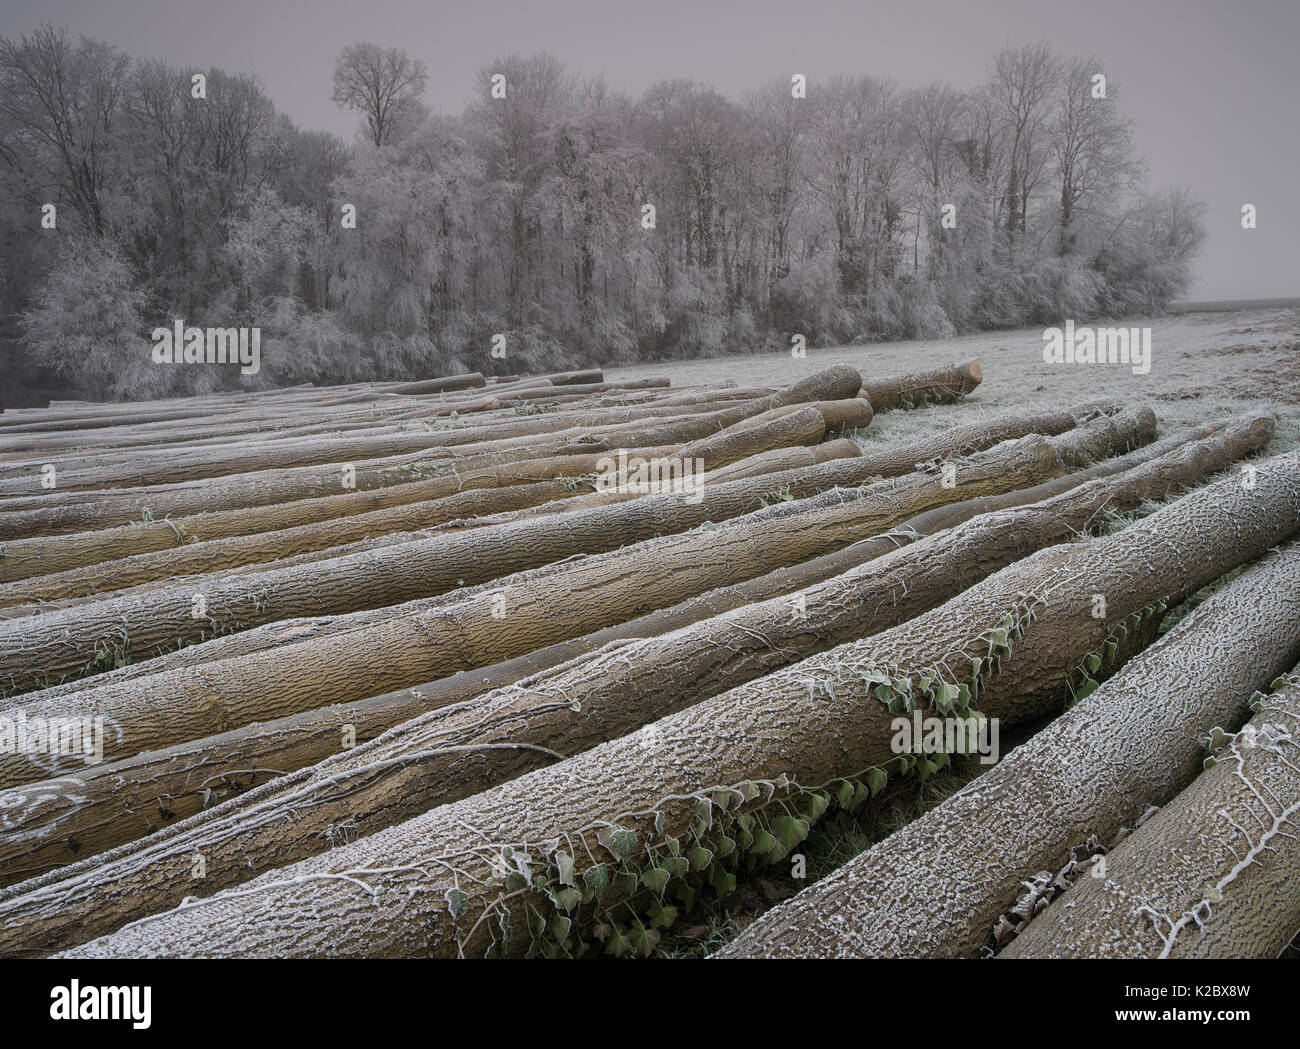 Timber on ground covered in frost in winter, Picardy, France, January. - Stock Image